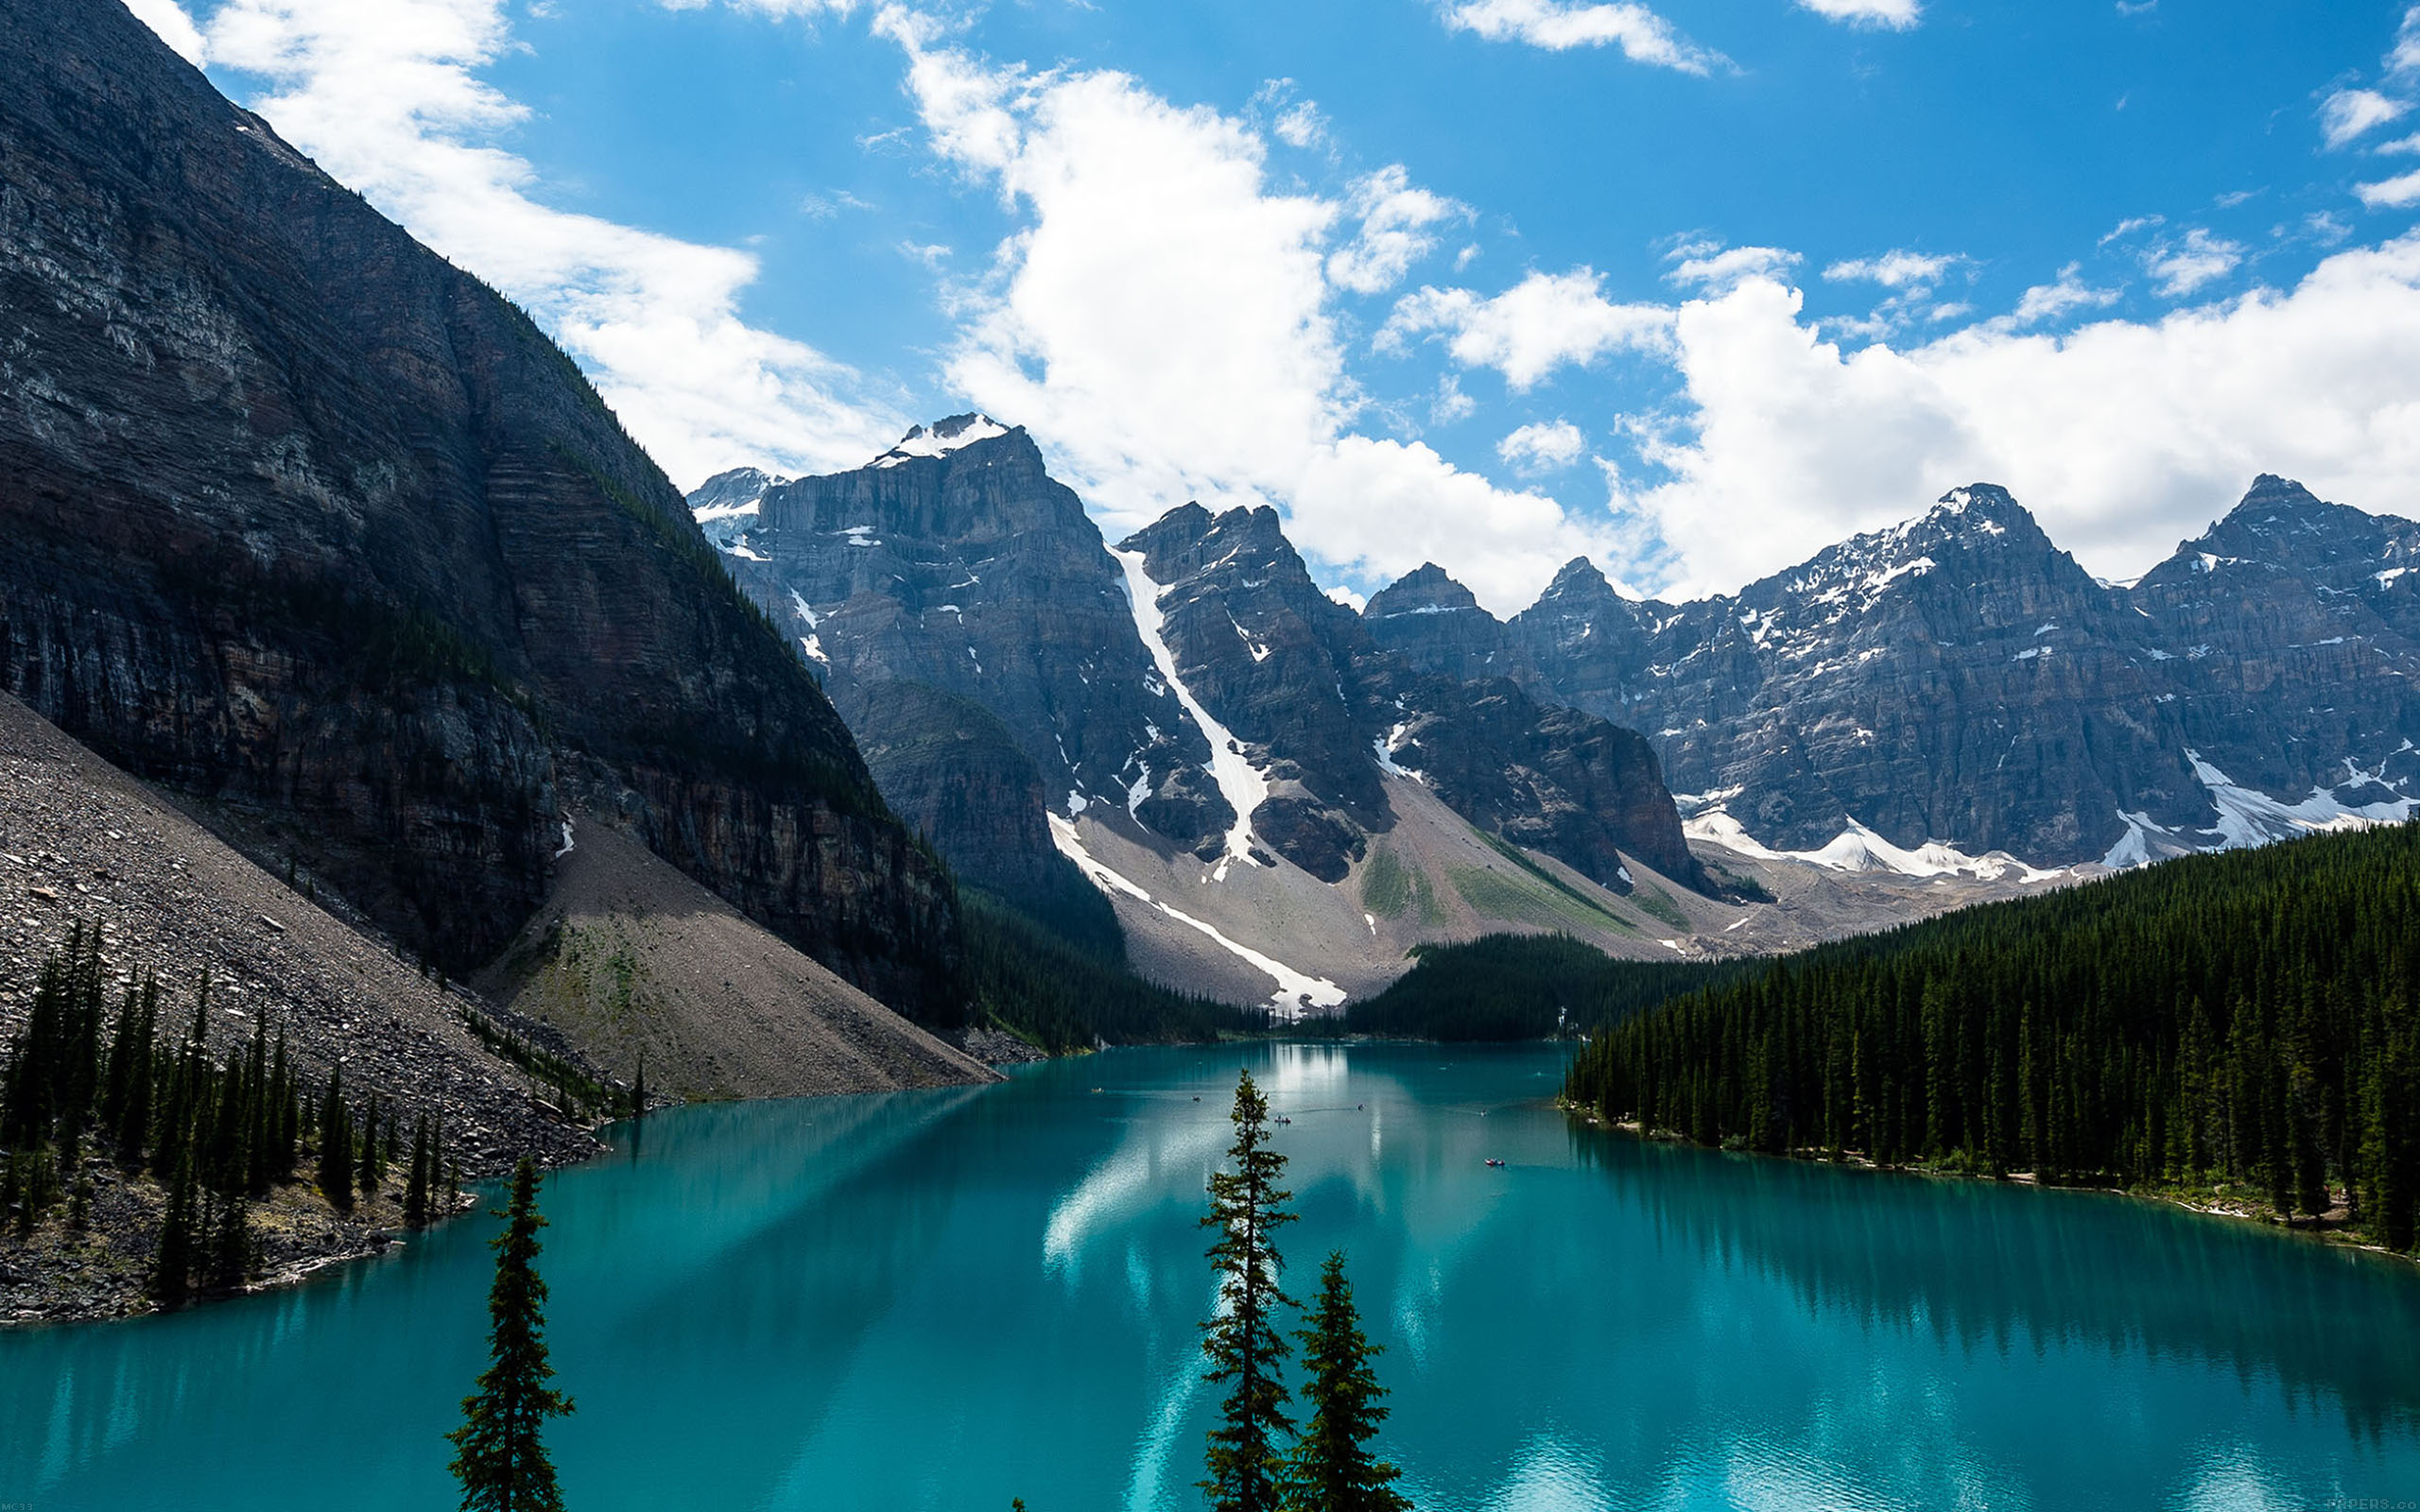 mc33-wallpaper-emerald-lake-canada-mountain-wallpaper